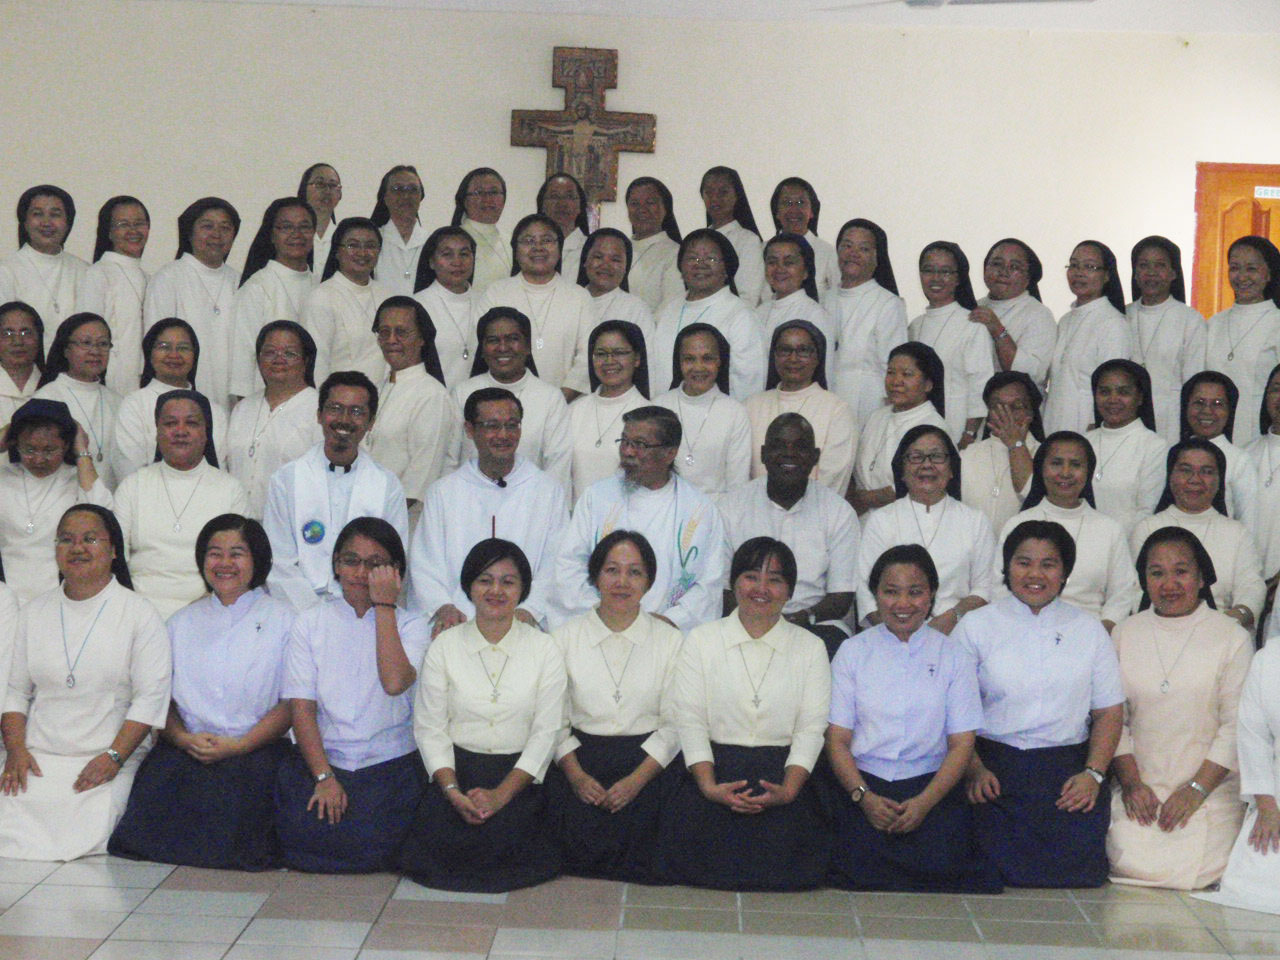 A section of the group photo taken after the Mass.